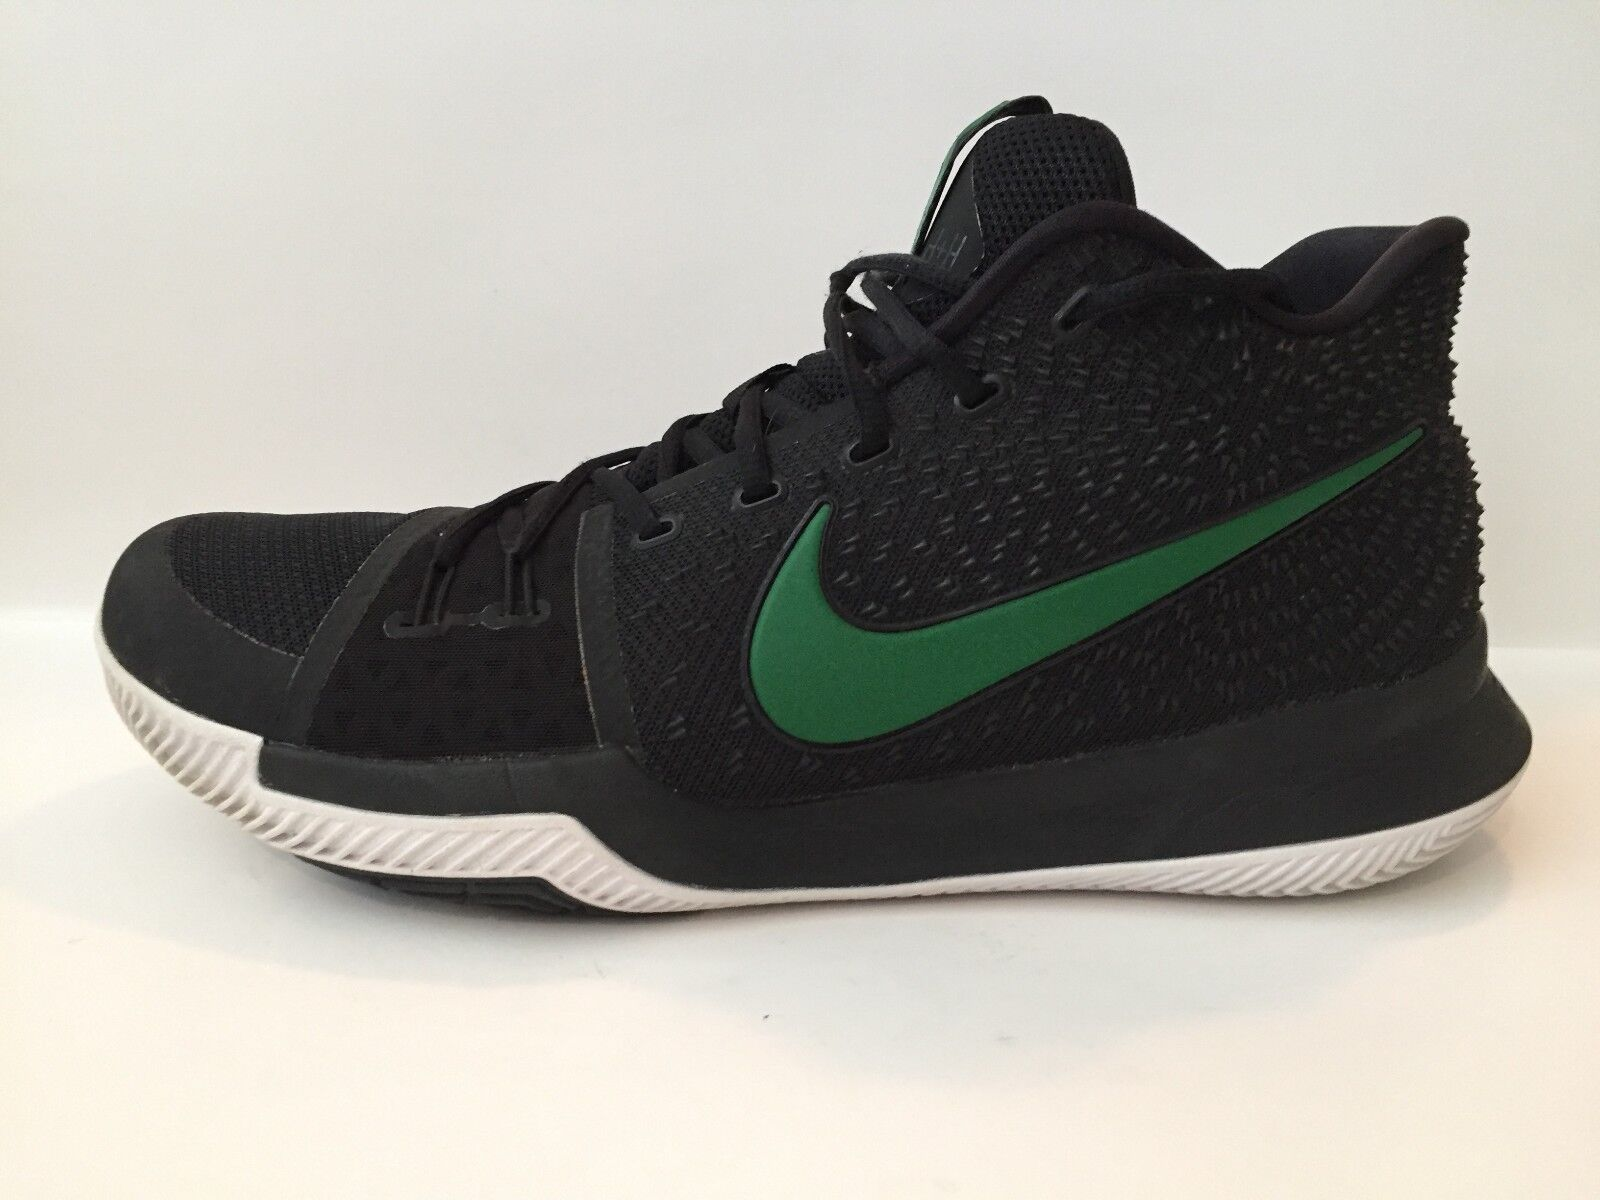 052e60d67ca7 ... discount code for mens uncle kyrie 3 ep iii irving uncle mens drew  basketball shoes black